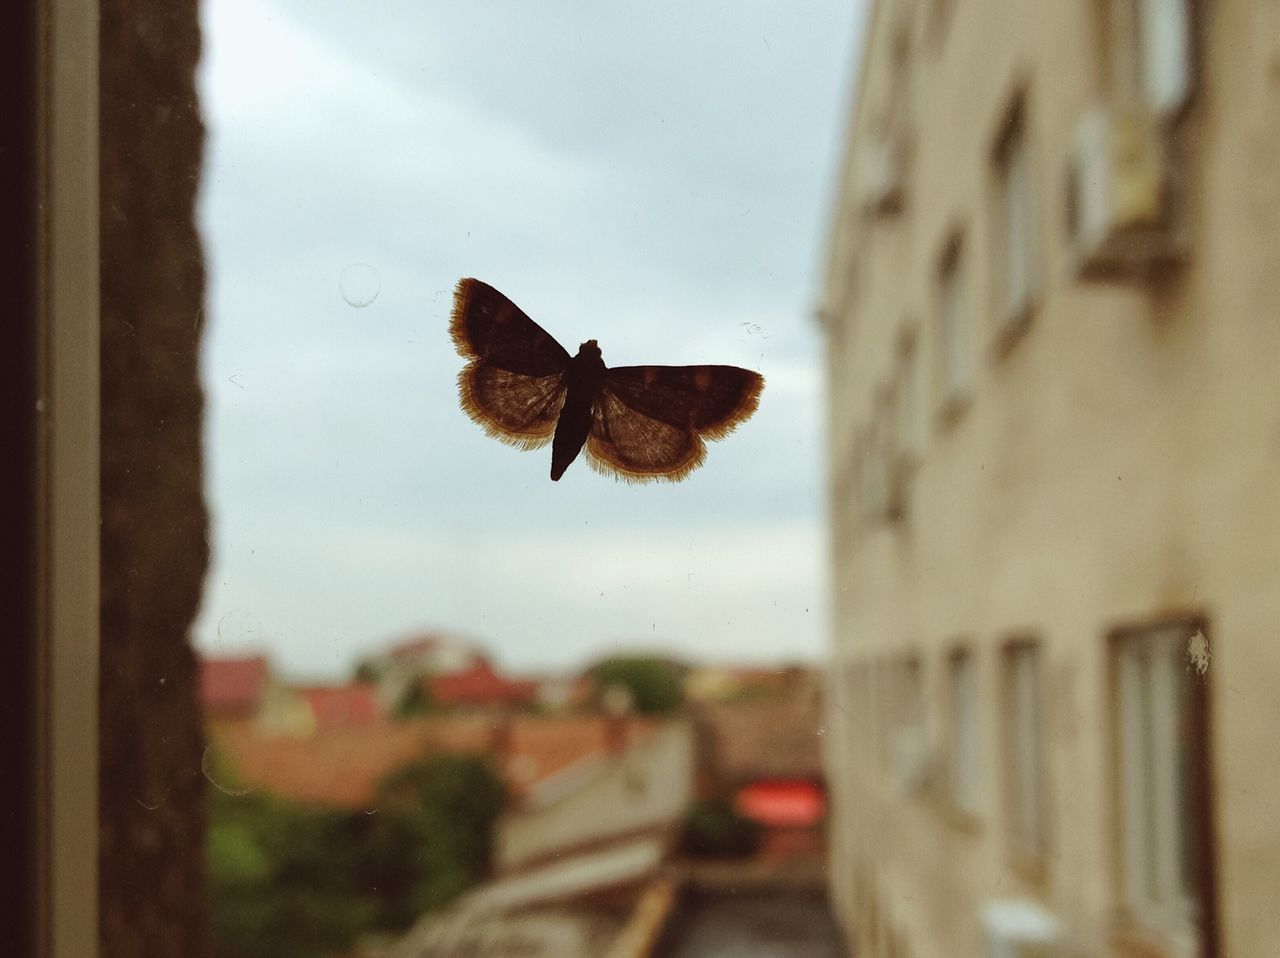 Translucid... Flying Moth IPhone Built Structure Building Exterior Focus On Foreground Sky Insect Animal Themes Spread Wings City Adapted To The City Details Found On The Roll Fresh On Eyeem  Details Of My Life Window My Favorite Photo VSCO City Close-up Nature One Animal Made In Romania Nature On Your Doorstep